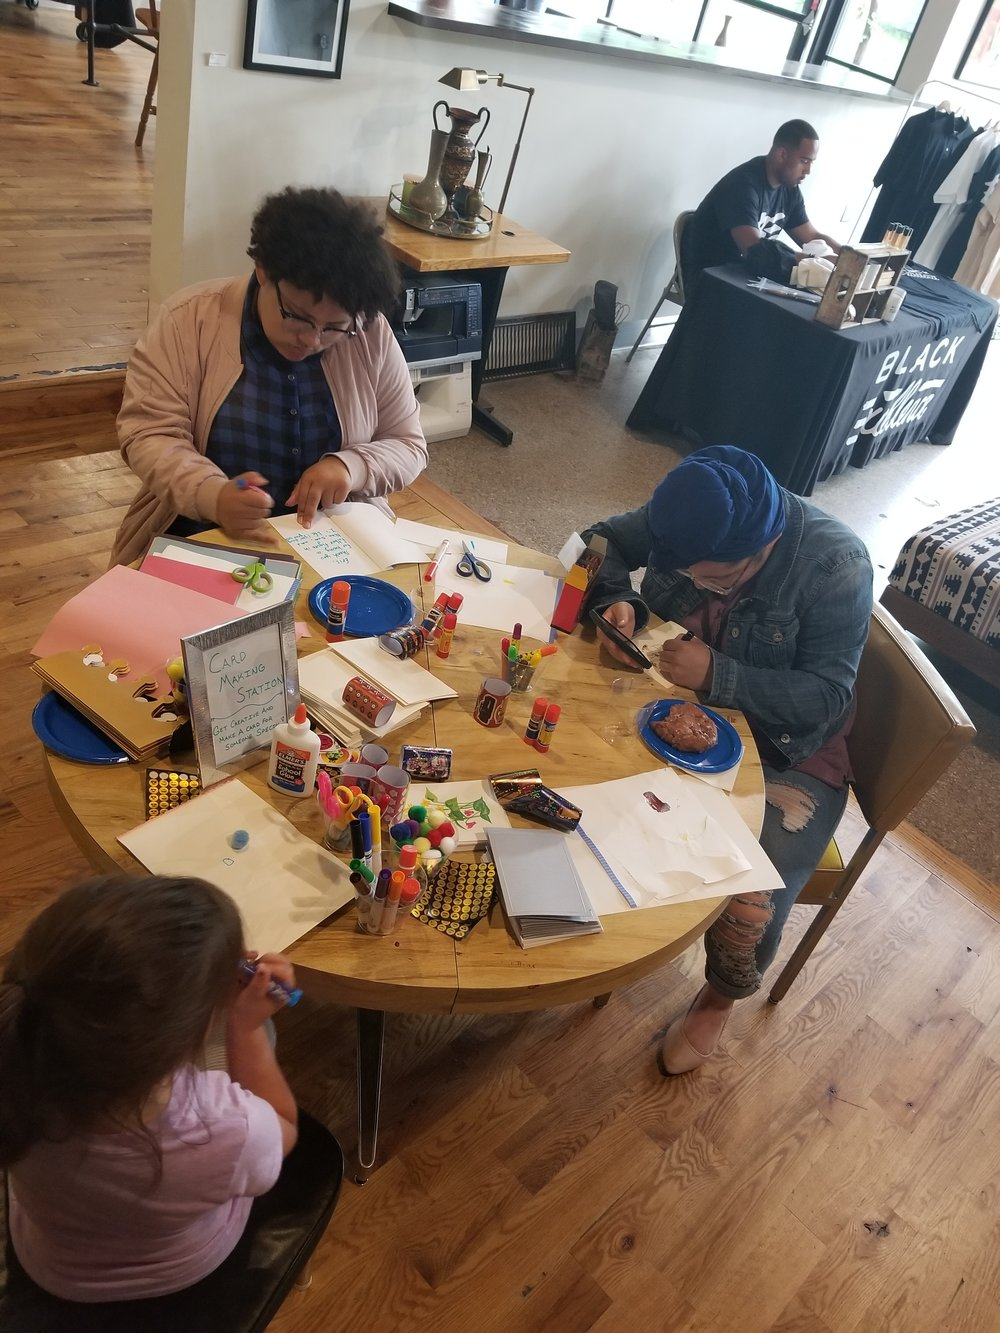 Angelina and Aliya Tchougo participated in the crafts offered at 'Dads, Dreams, and Donuts.'  Photo by Markella Smith